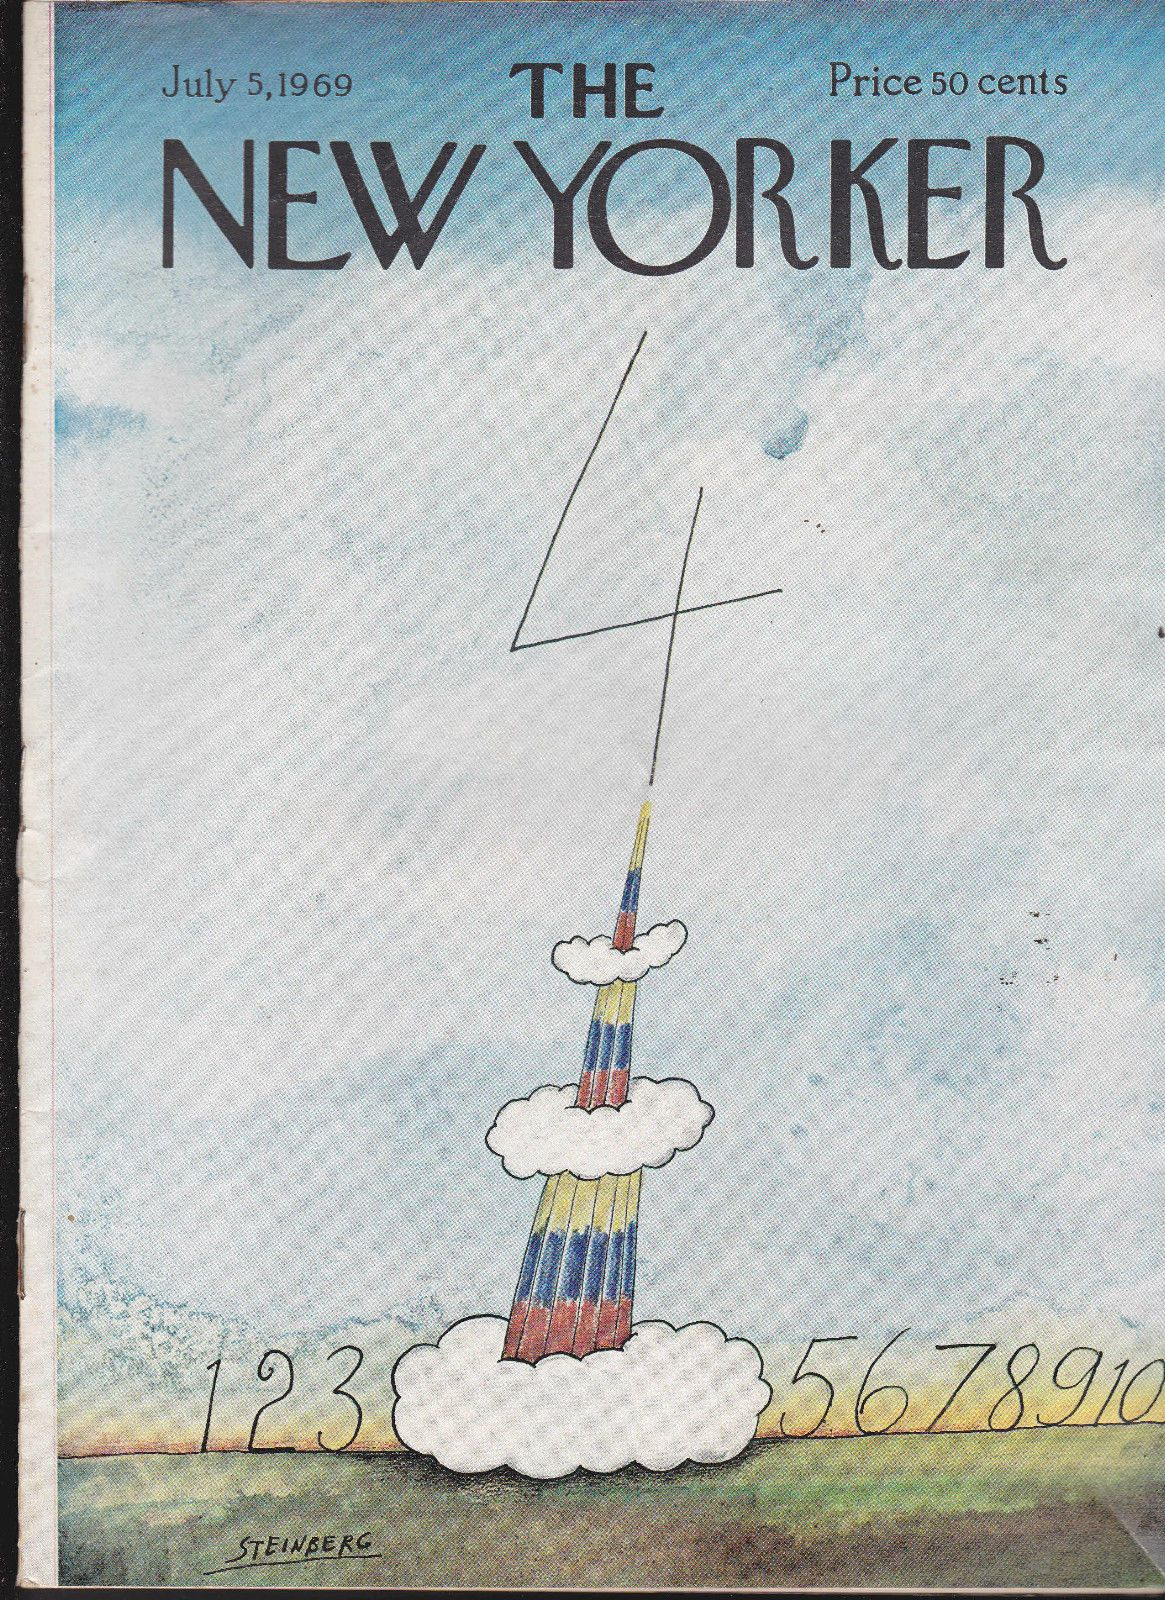 The new yorker july cover artwork by saul steinberg